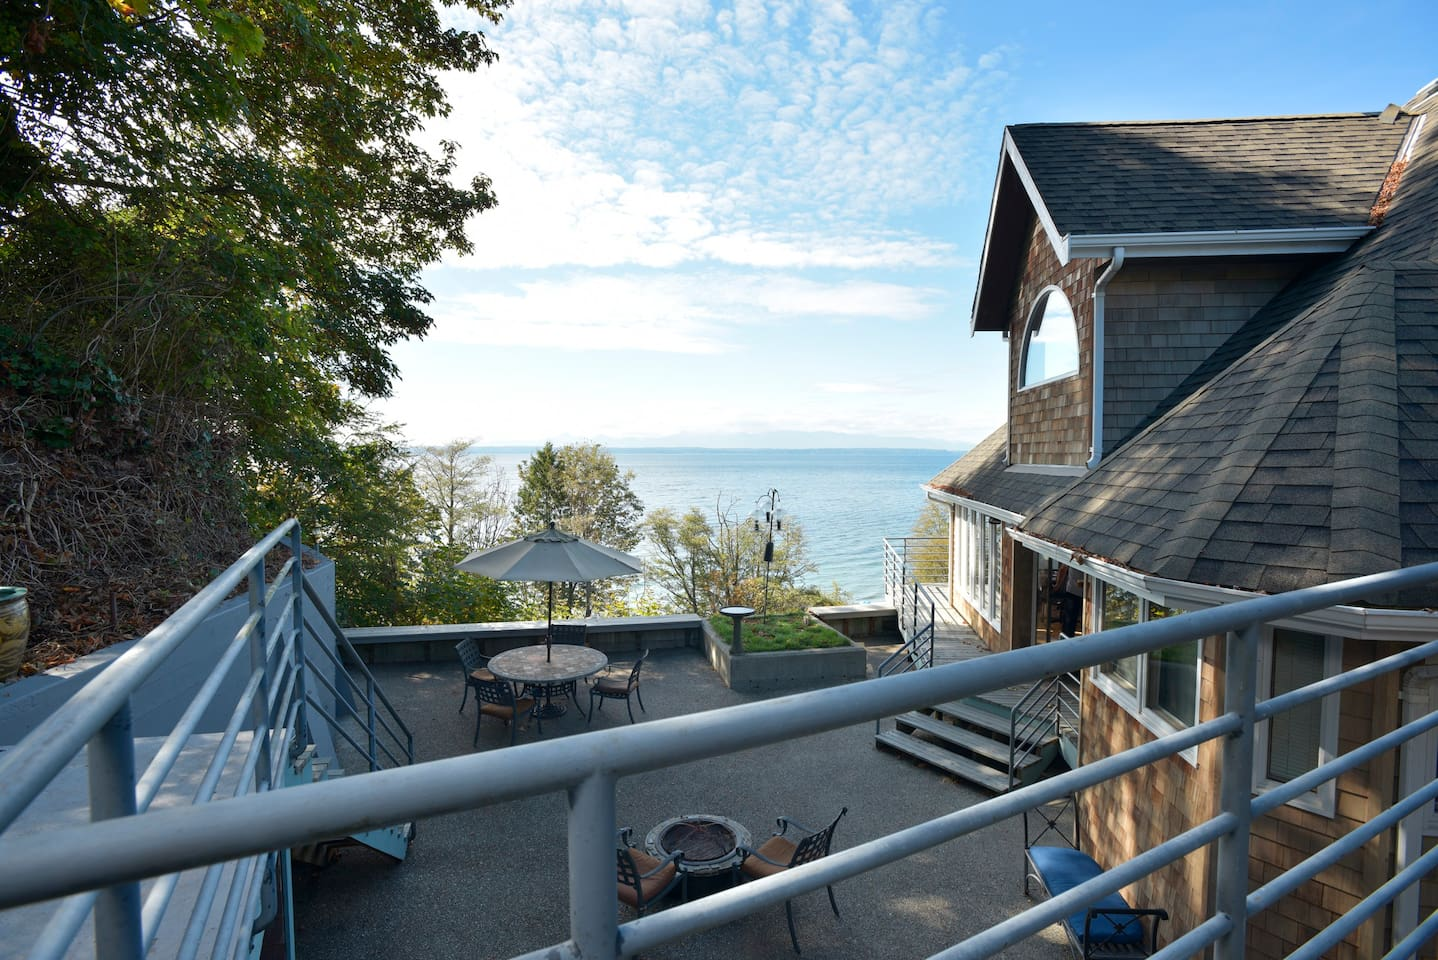 Experience the glories of the Pacific Northwest at this peaceful beachfront retreat. The rhythm of the waves and birdsongs are the soundtrack to the panoramic views of water, mountains, and sky.